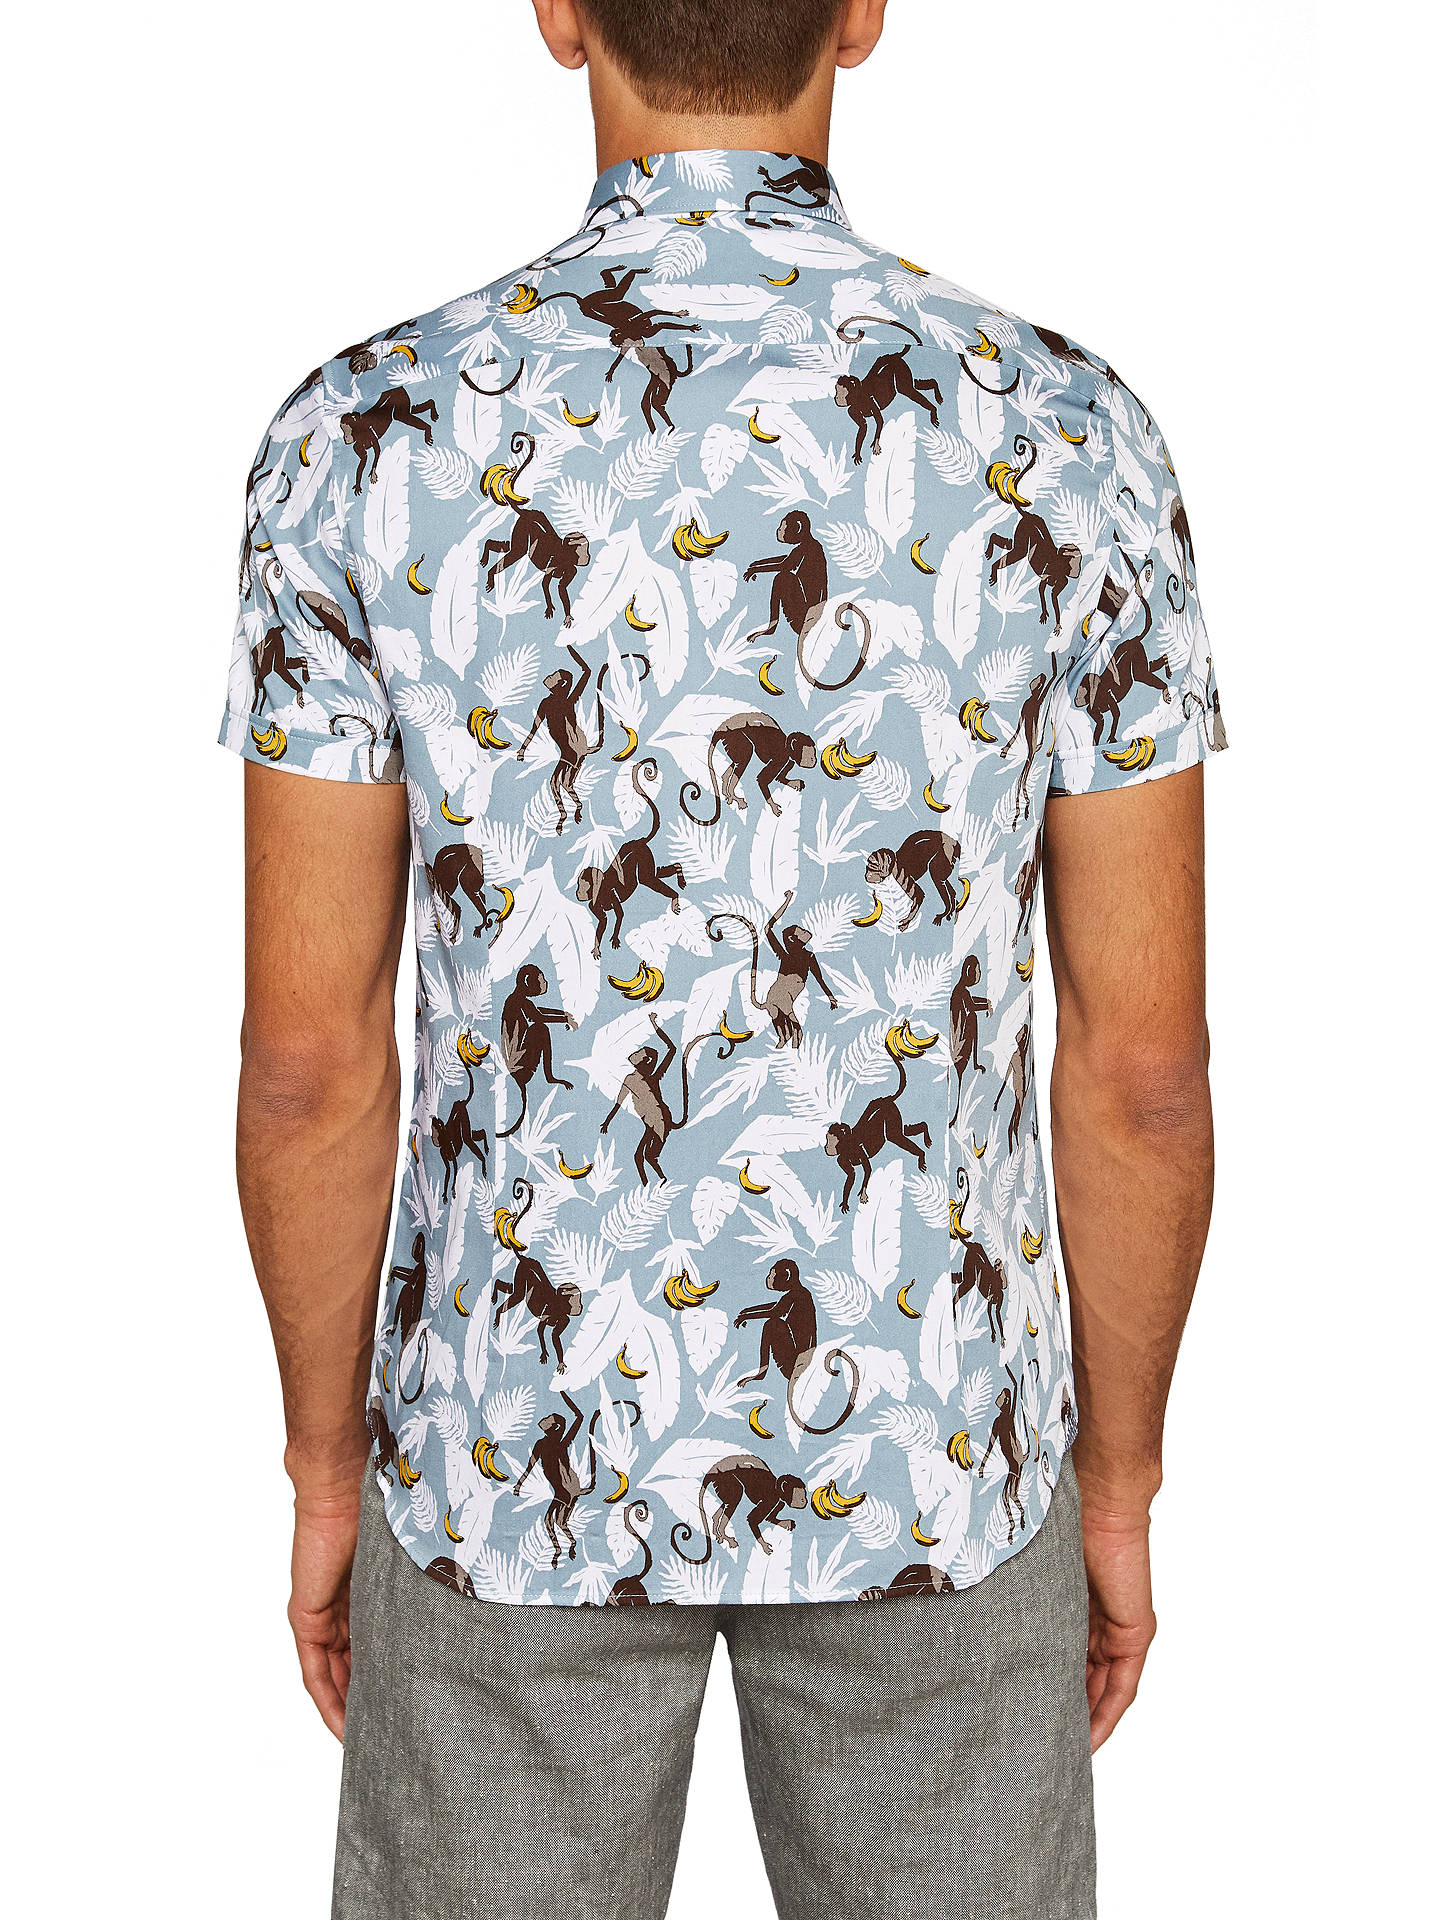 BuyTed Baker Glovers Monkey Print Cotton Shirt, Blue, 2 Online at johnlewis.com